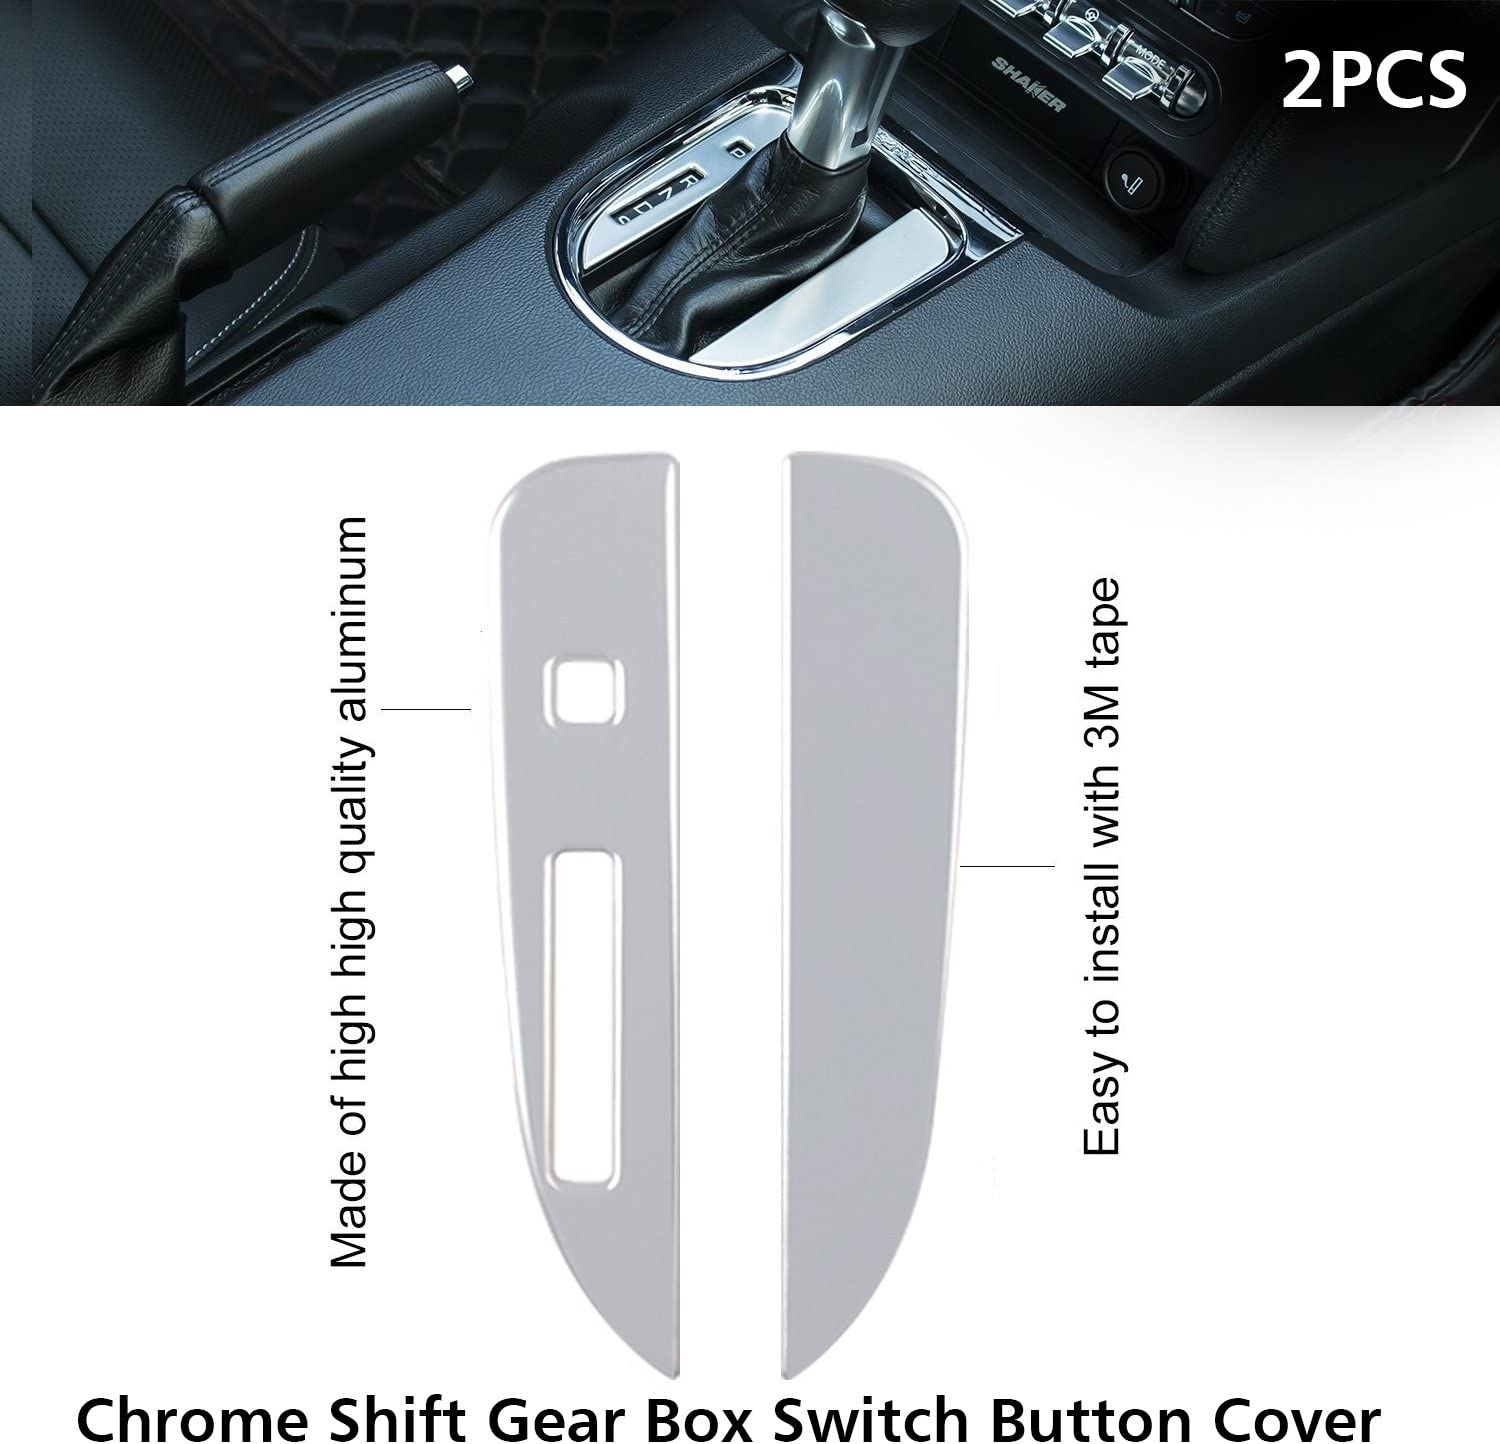 15 PCS Accessories Decoration Set Console Central for 2015 2016 2017 2018 Ford Mustang Interior Dash Board Side Air Conditioner Outlet Vent Door Chrome Shift Gear Box Switch Button Cover Trim